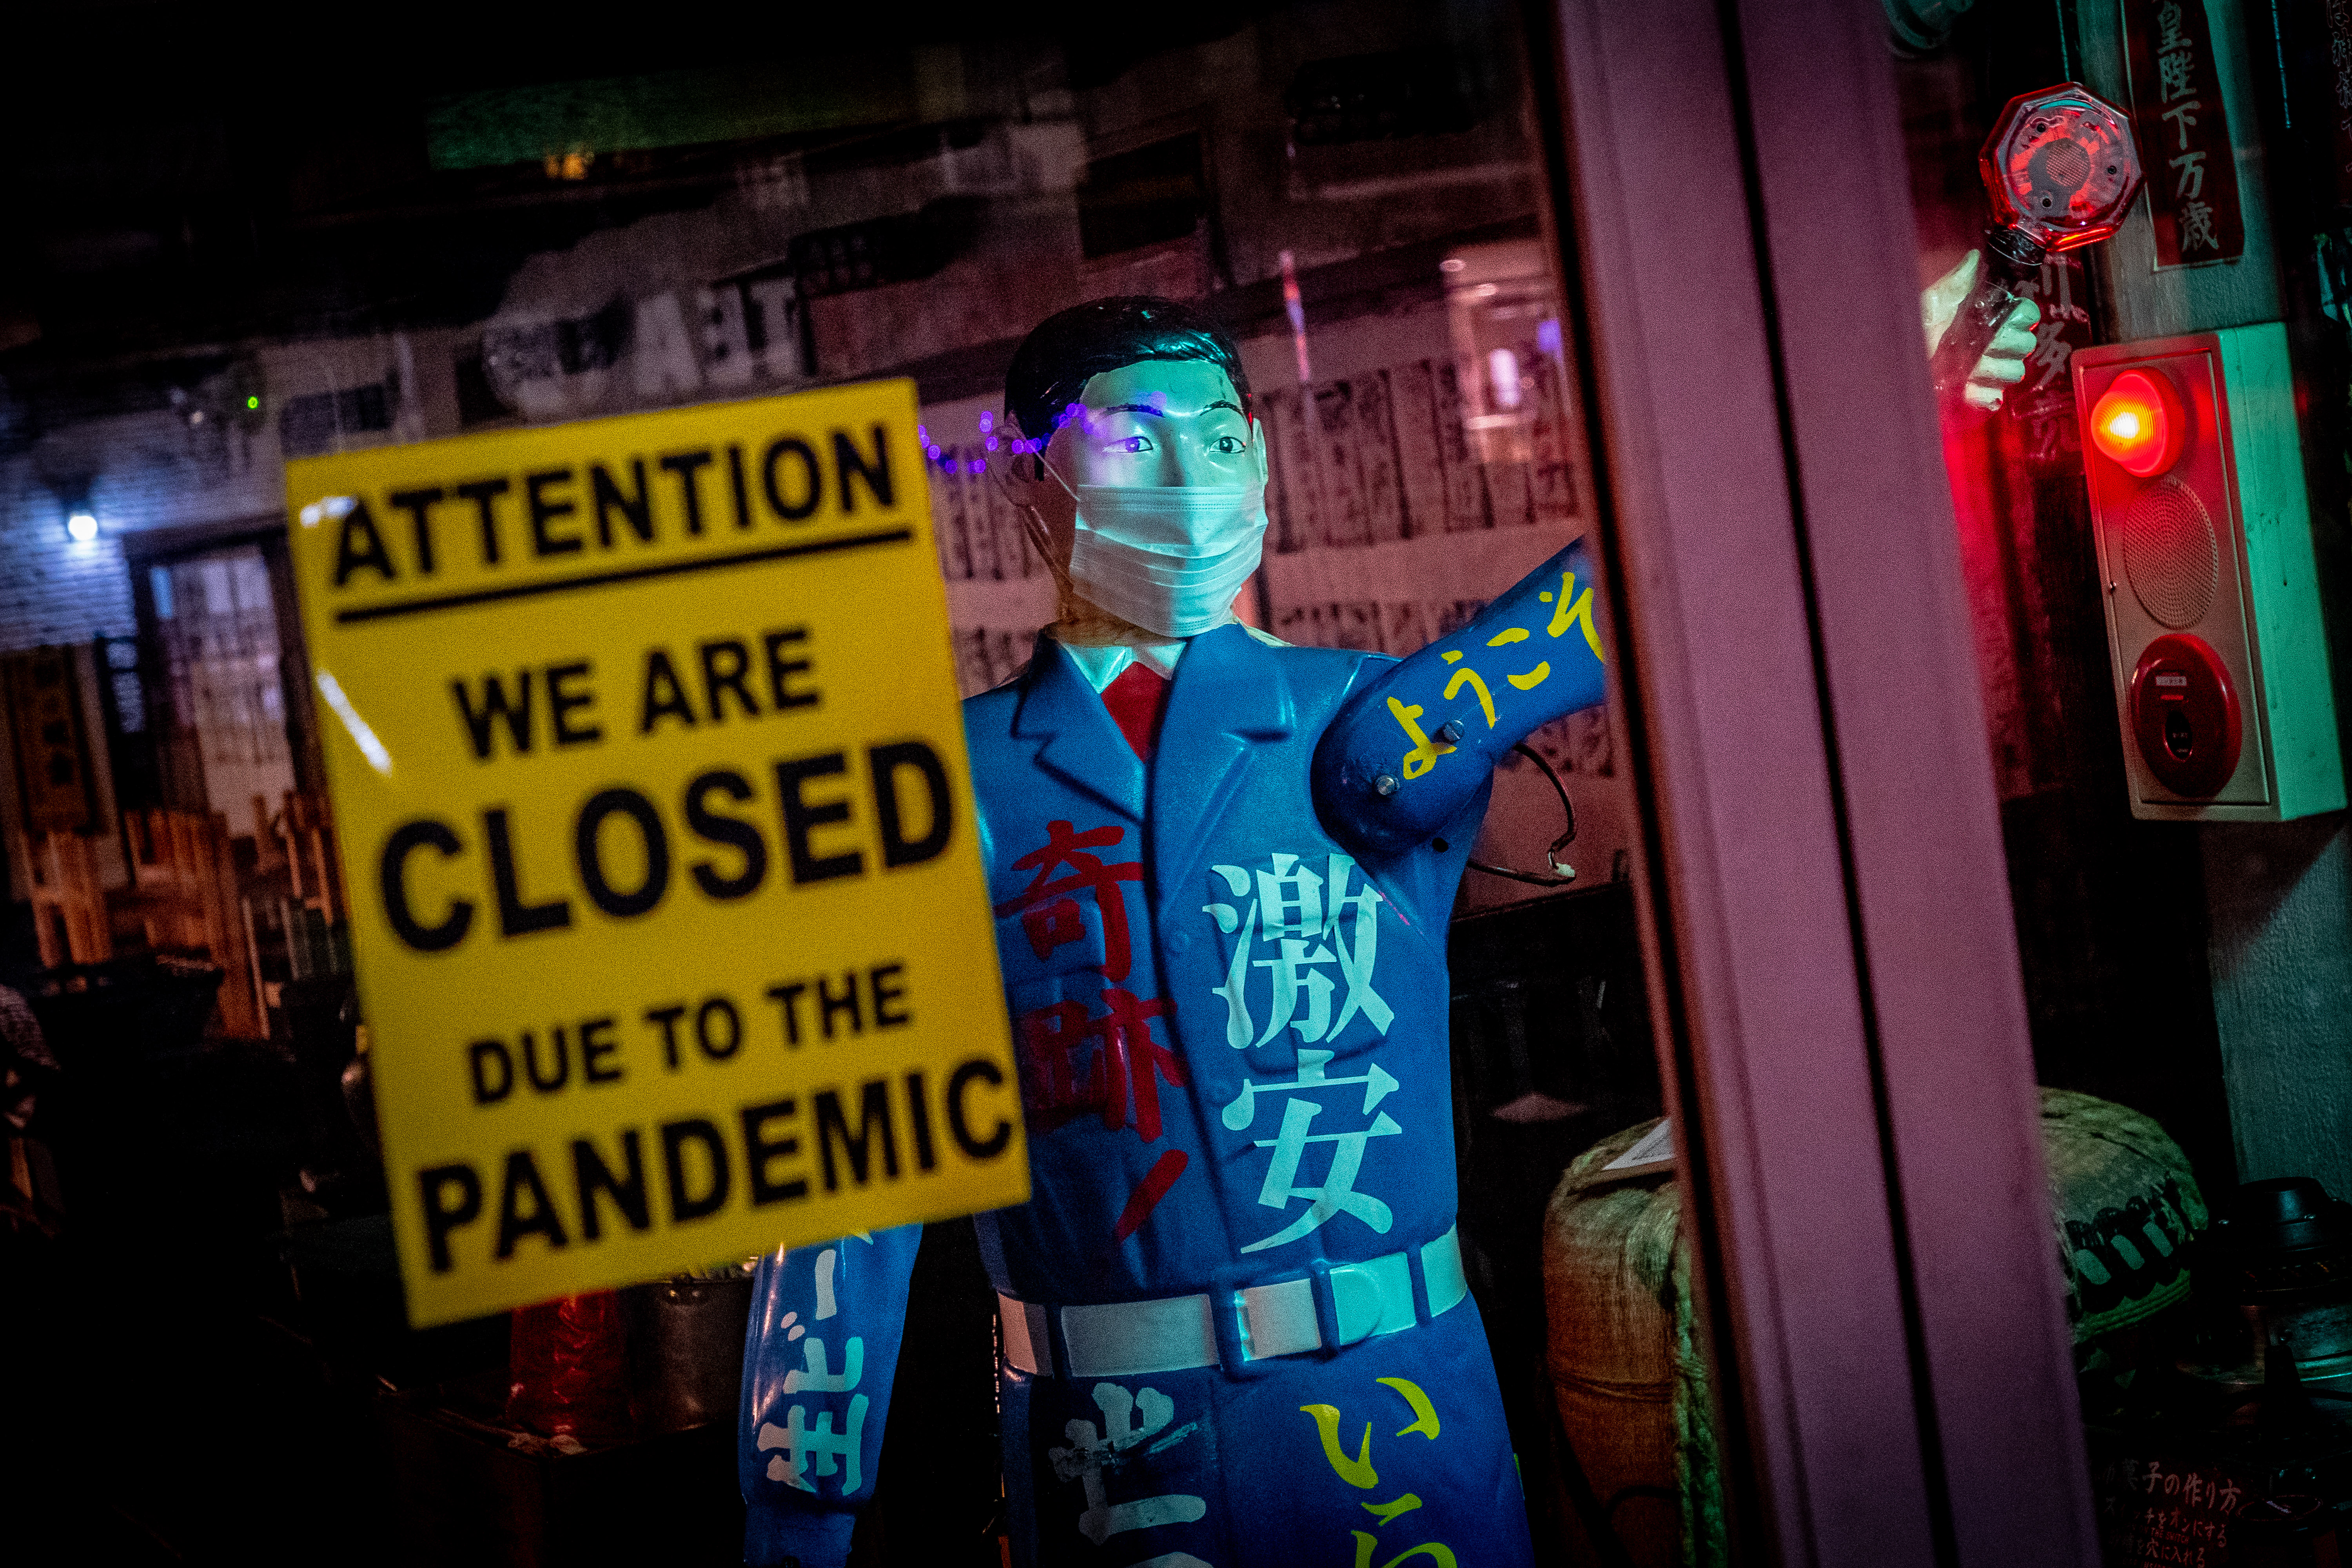 """A sign that says """"We are closed due to the pandemic"""" next to a statue wearing a face mask"""